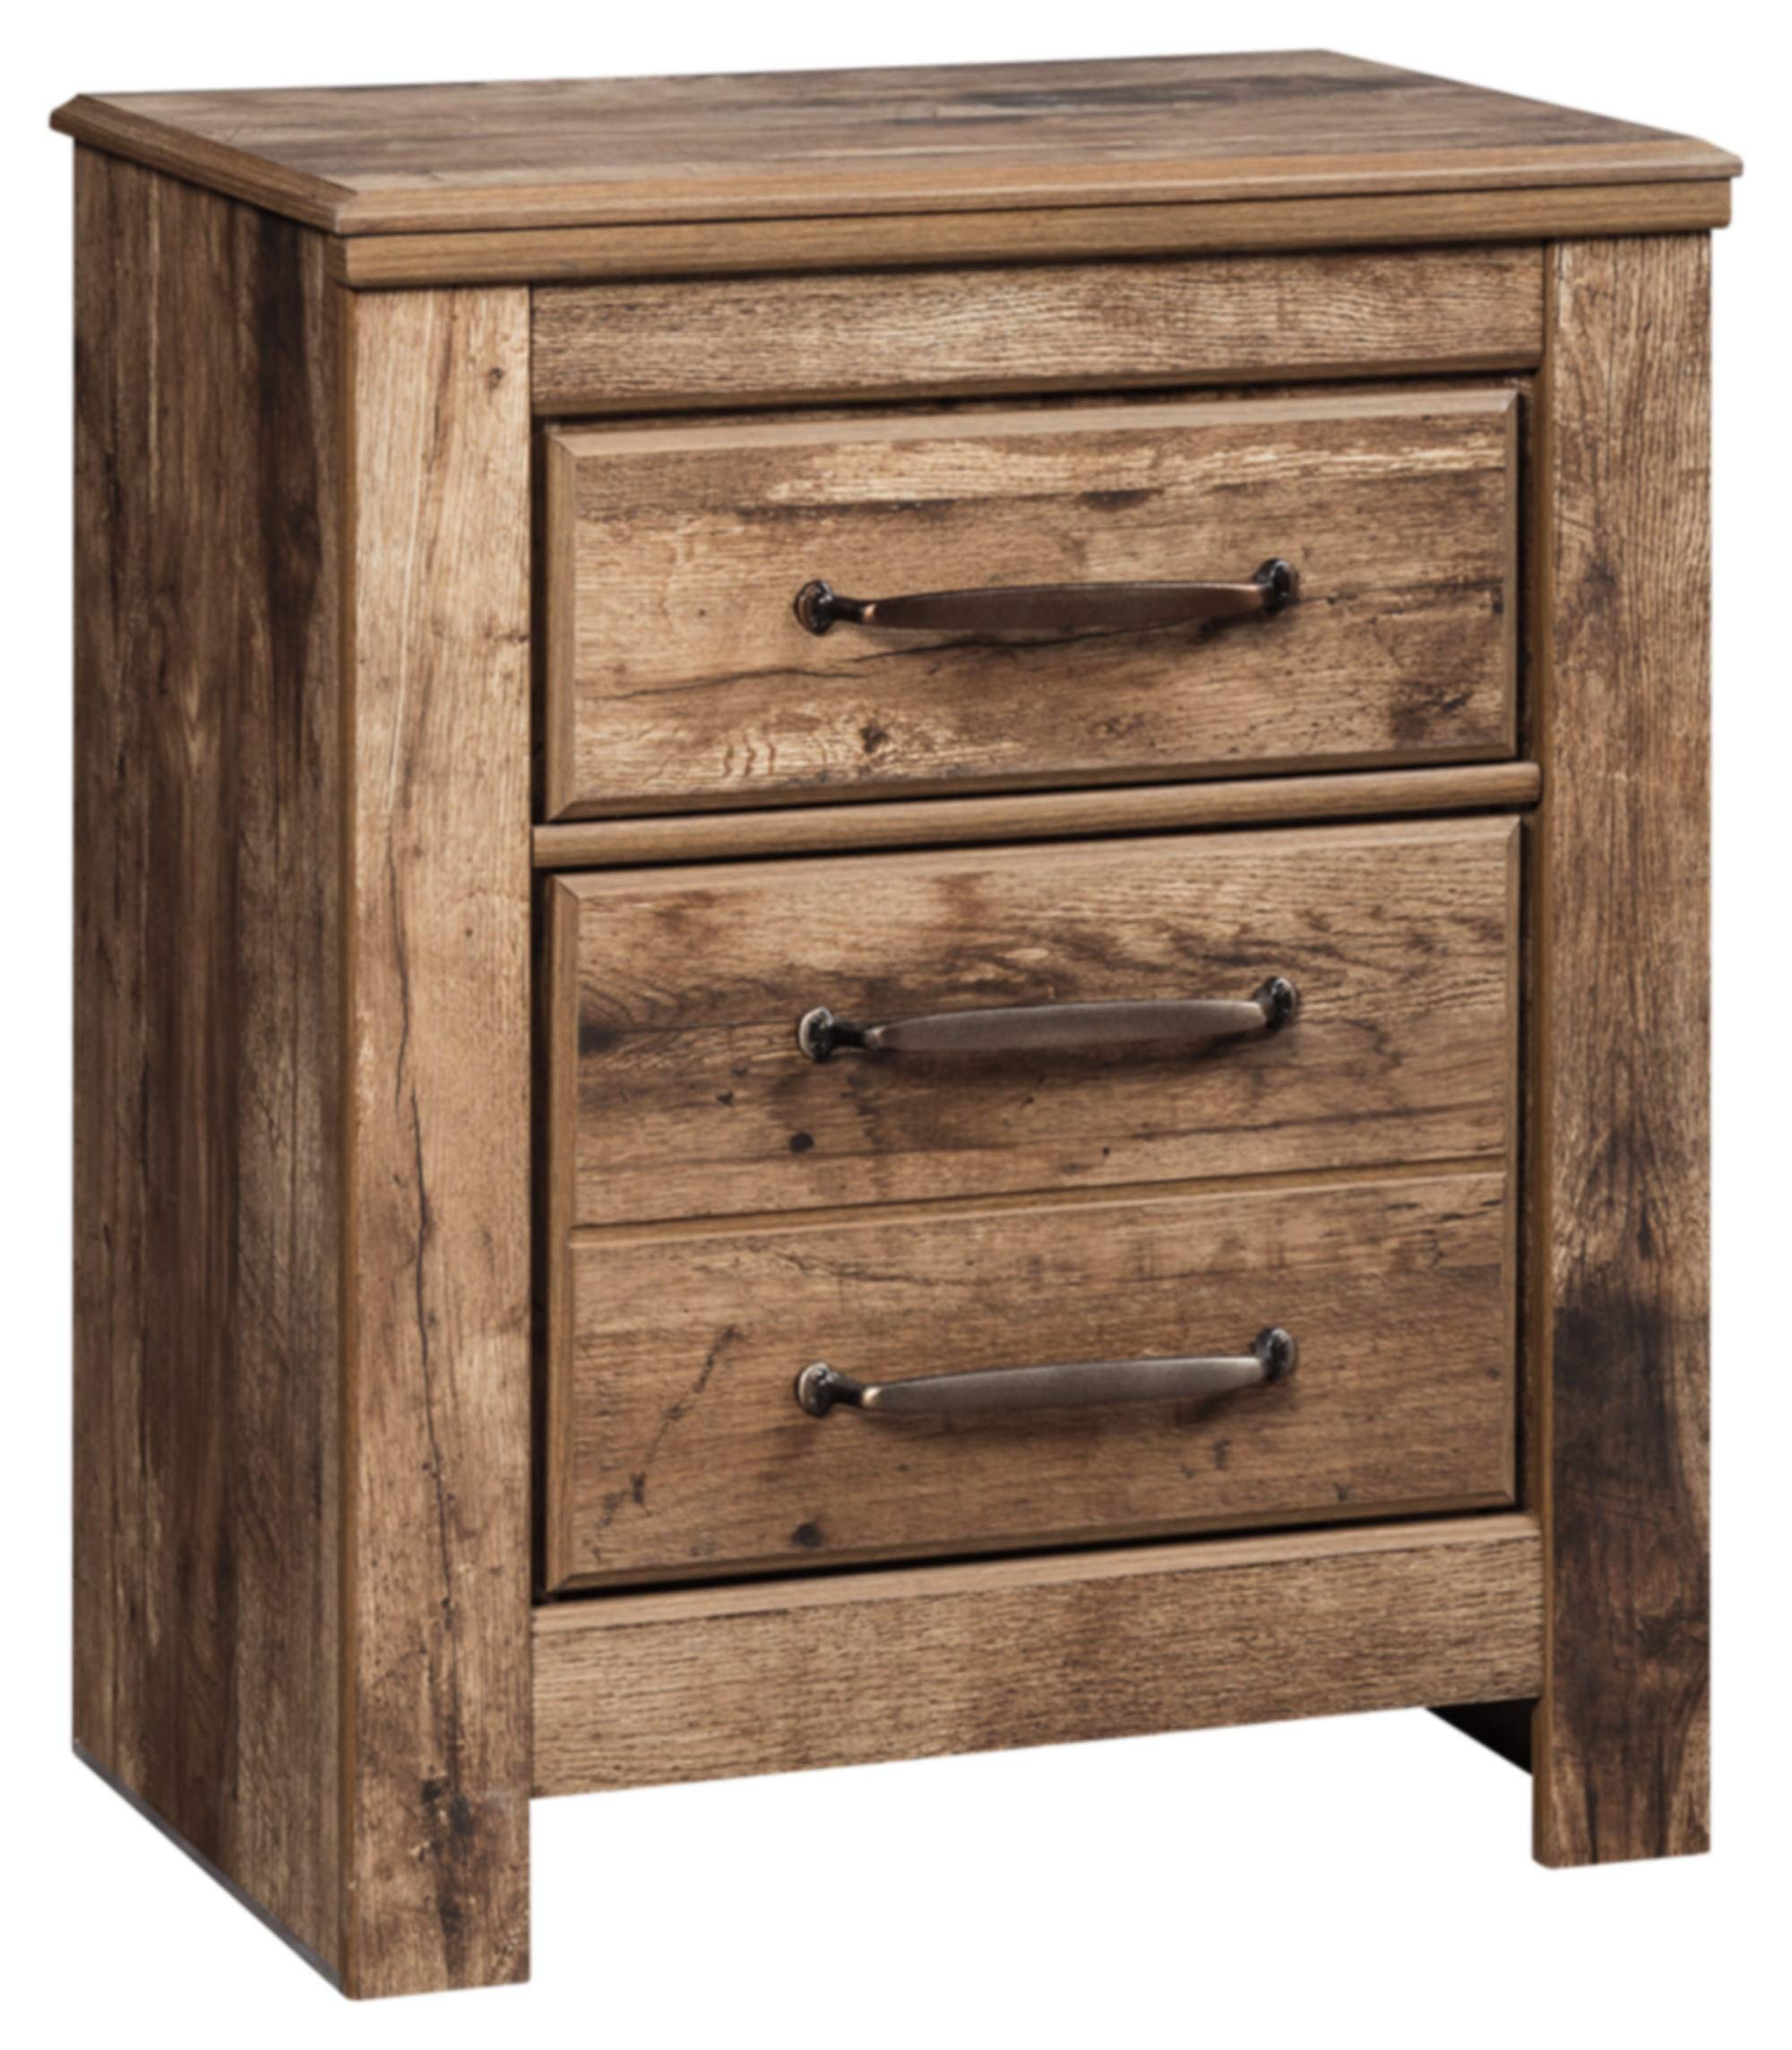 Signature Design by Ashley B224-92 Blaneville Nightstand, 15.91'' D x 24.21'' W x 29.23'' H, Brown